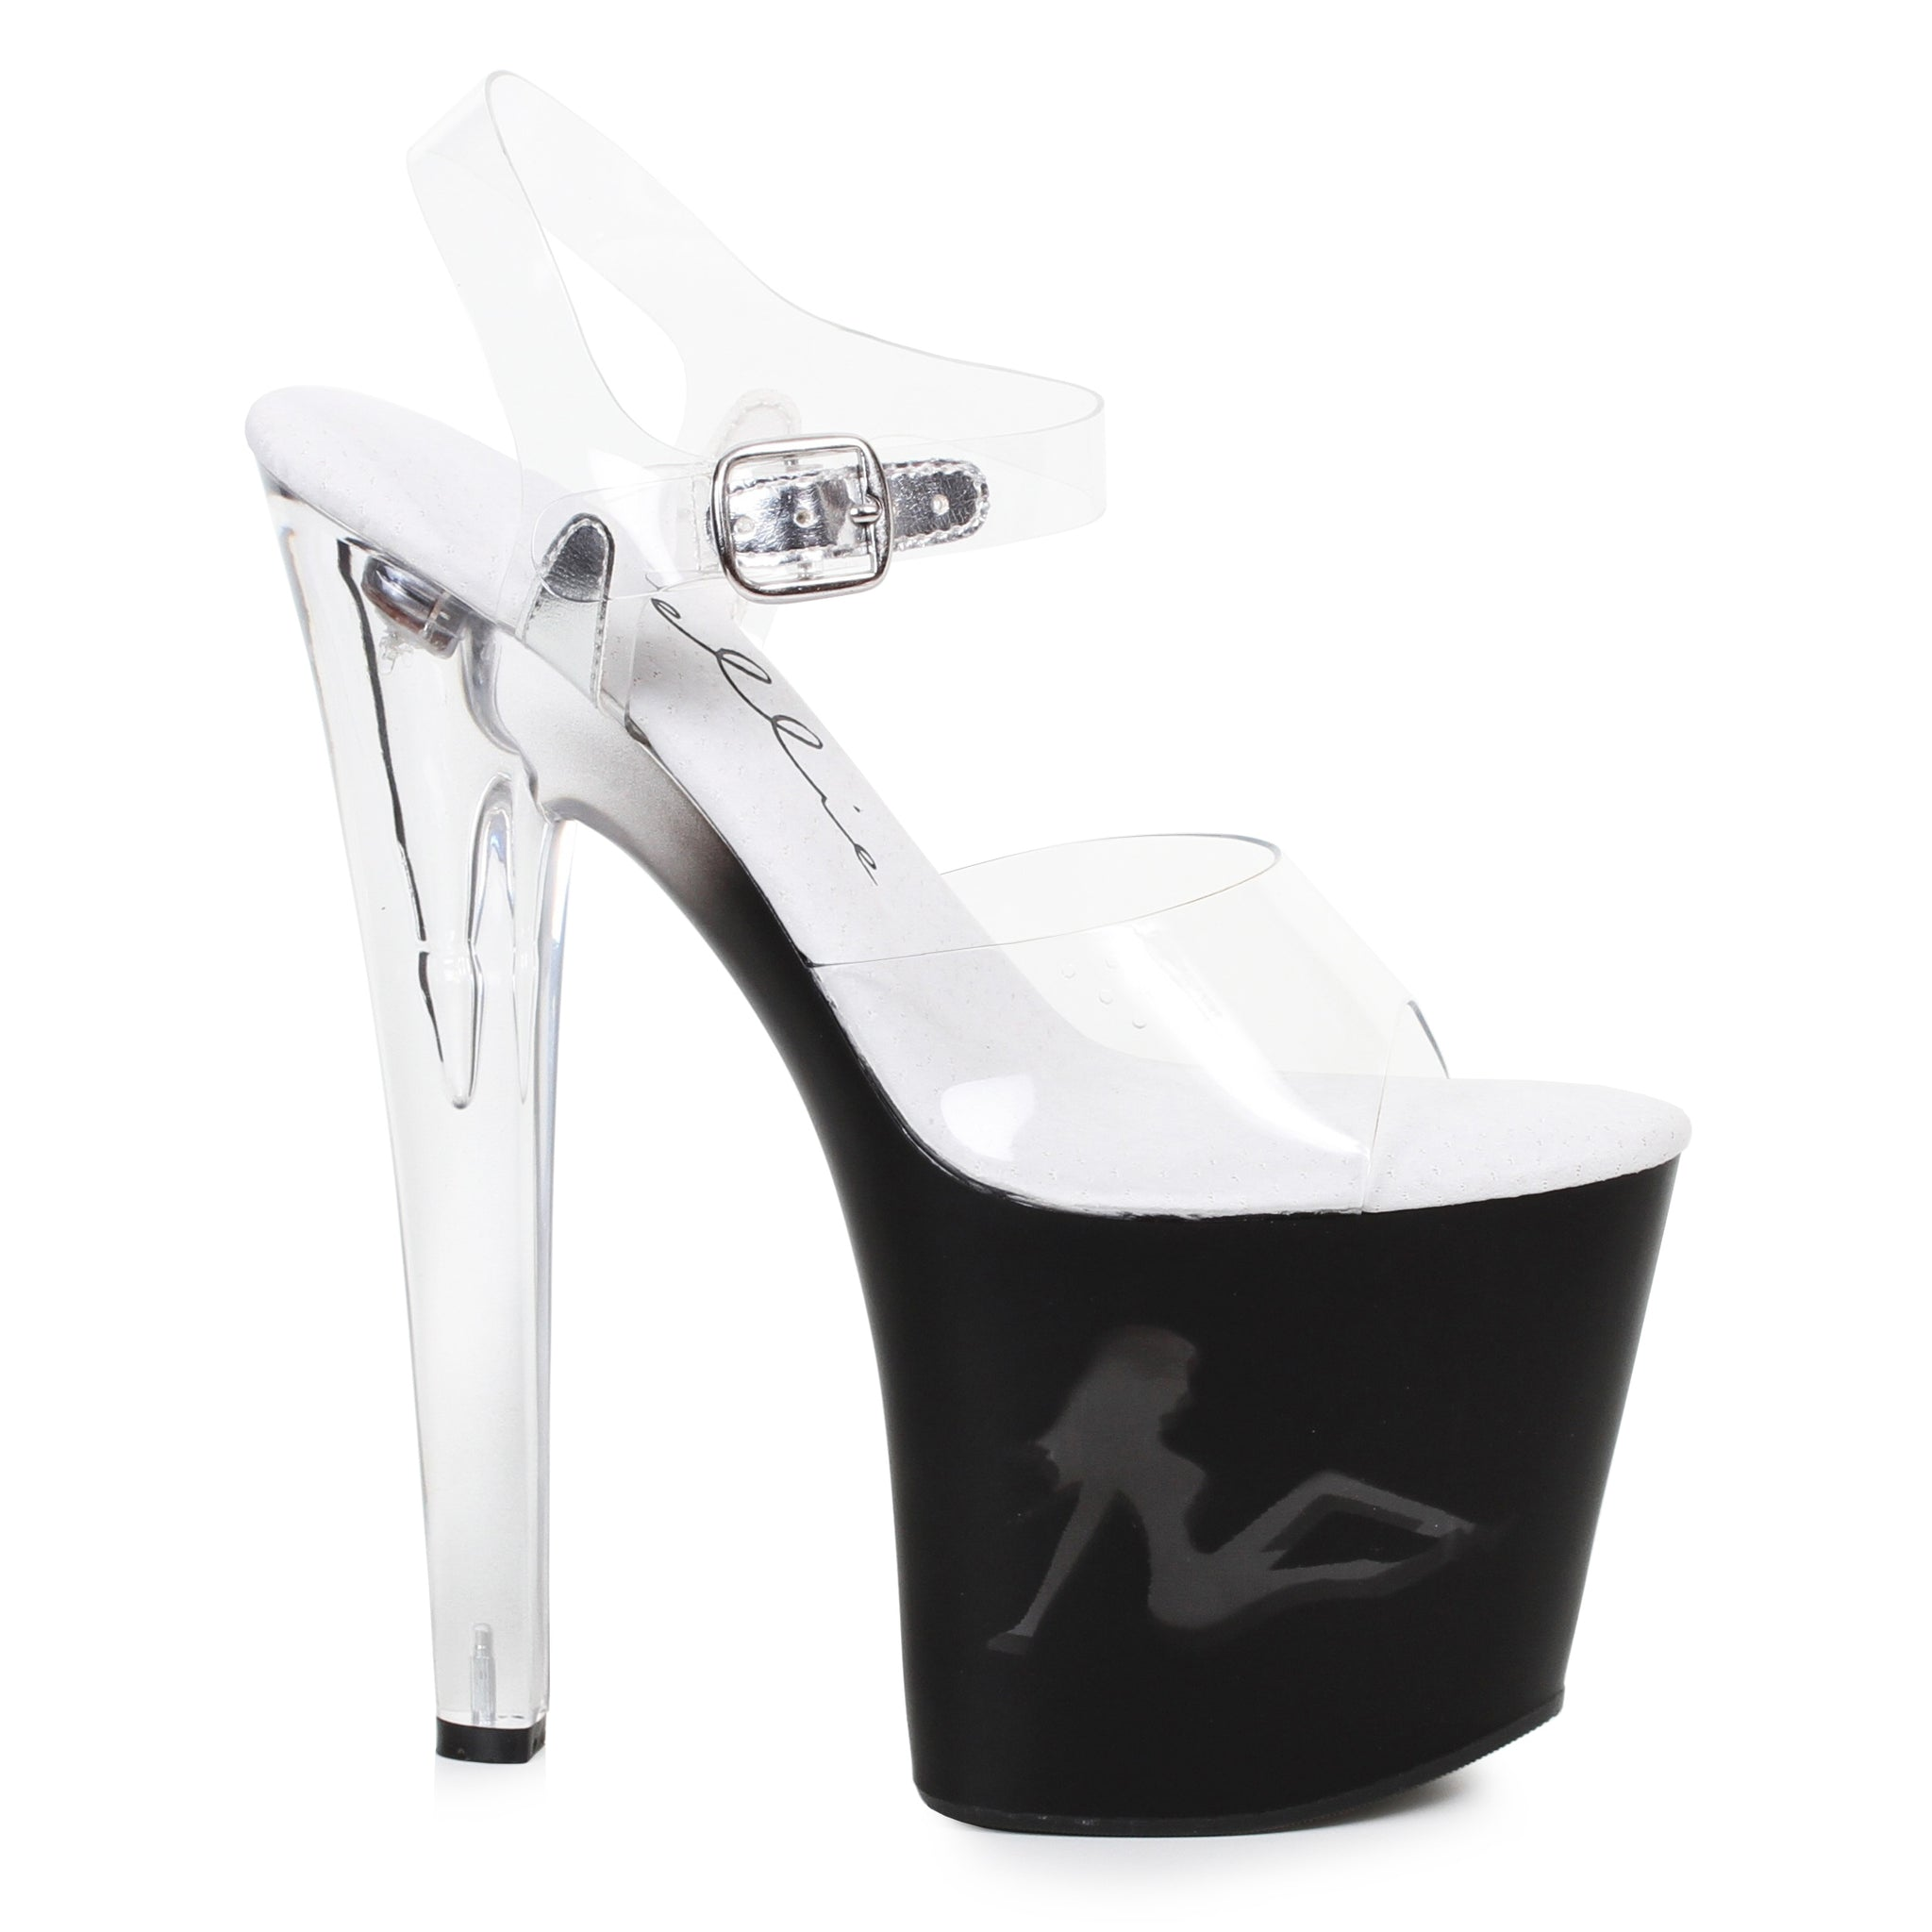 8 Pointed Stiletto Sandal With Light Up Truckgirl